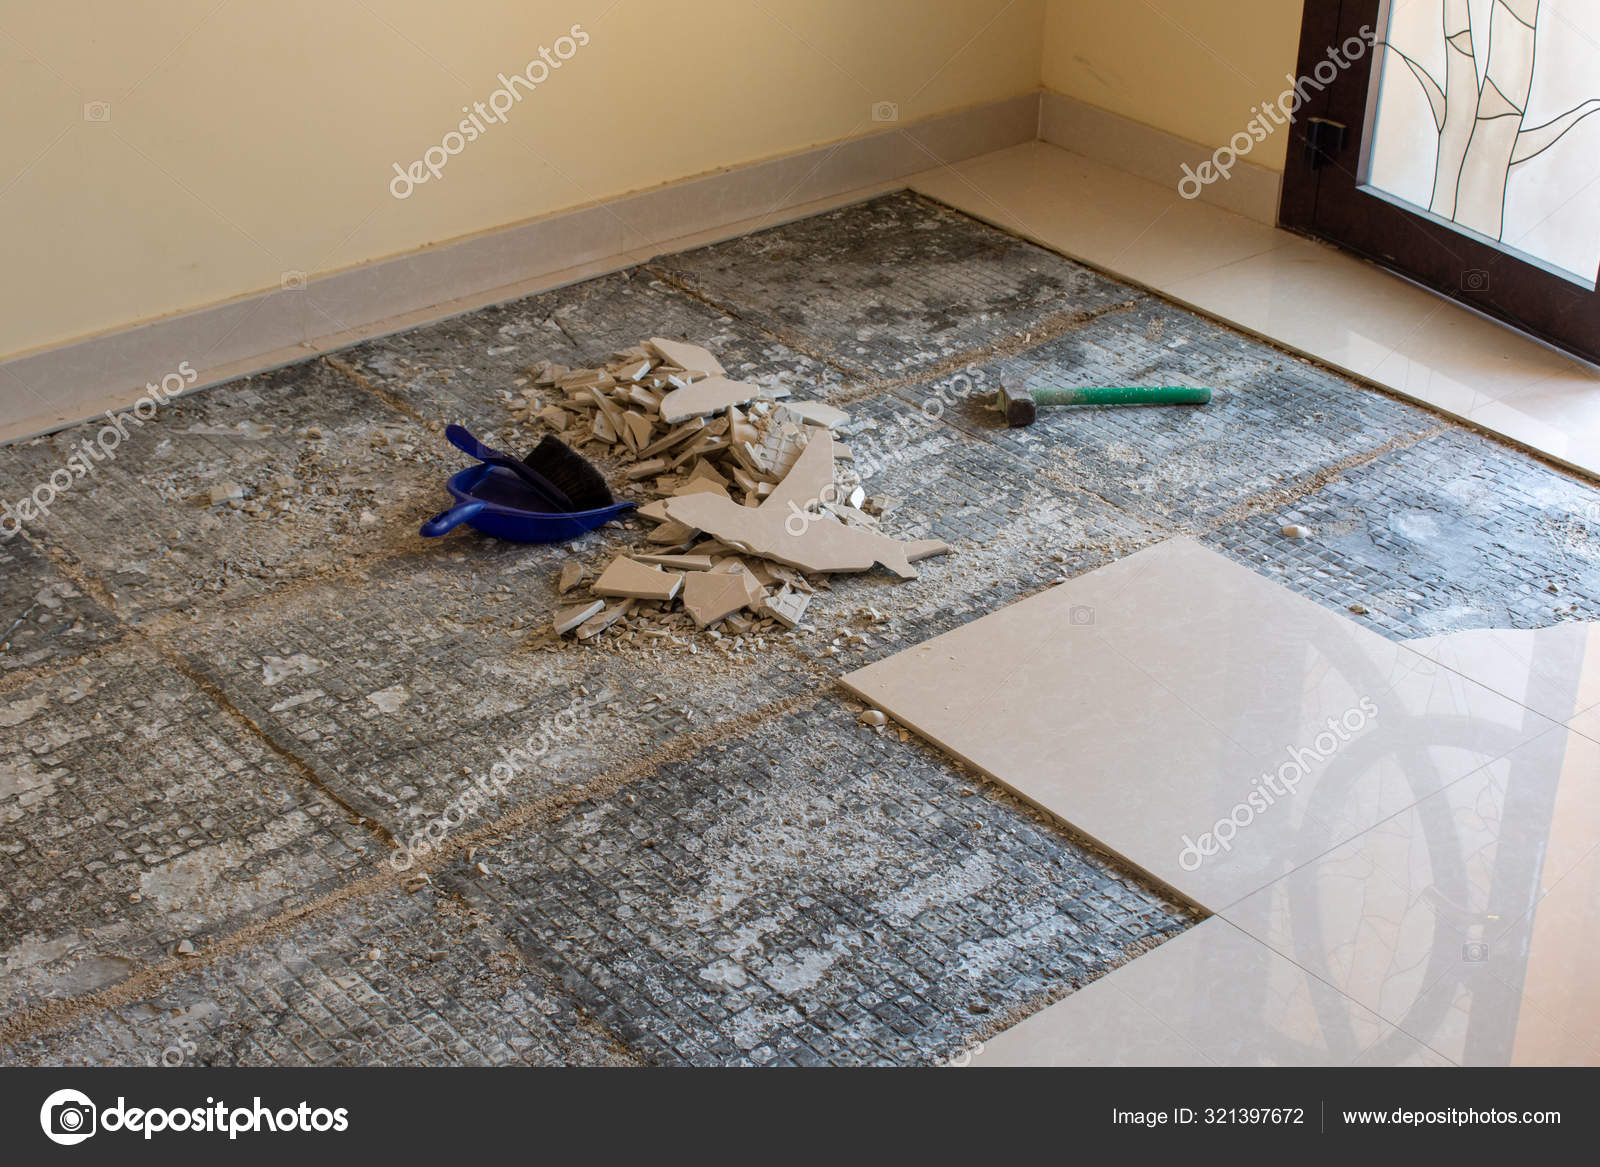 home renovation of ceramic tiles in an entrance way breaking up the tiles diy and cleaning up broken pieces before laying new tiles with mortar and cement stock photo image by c